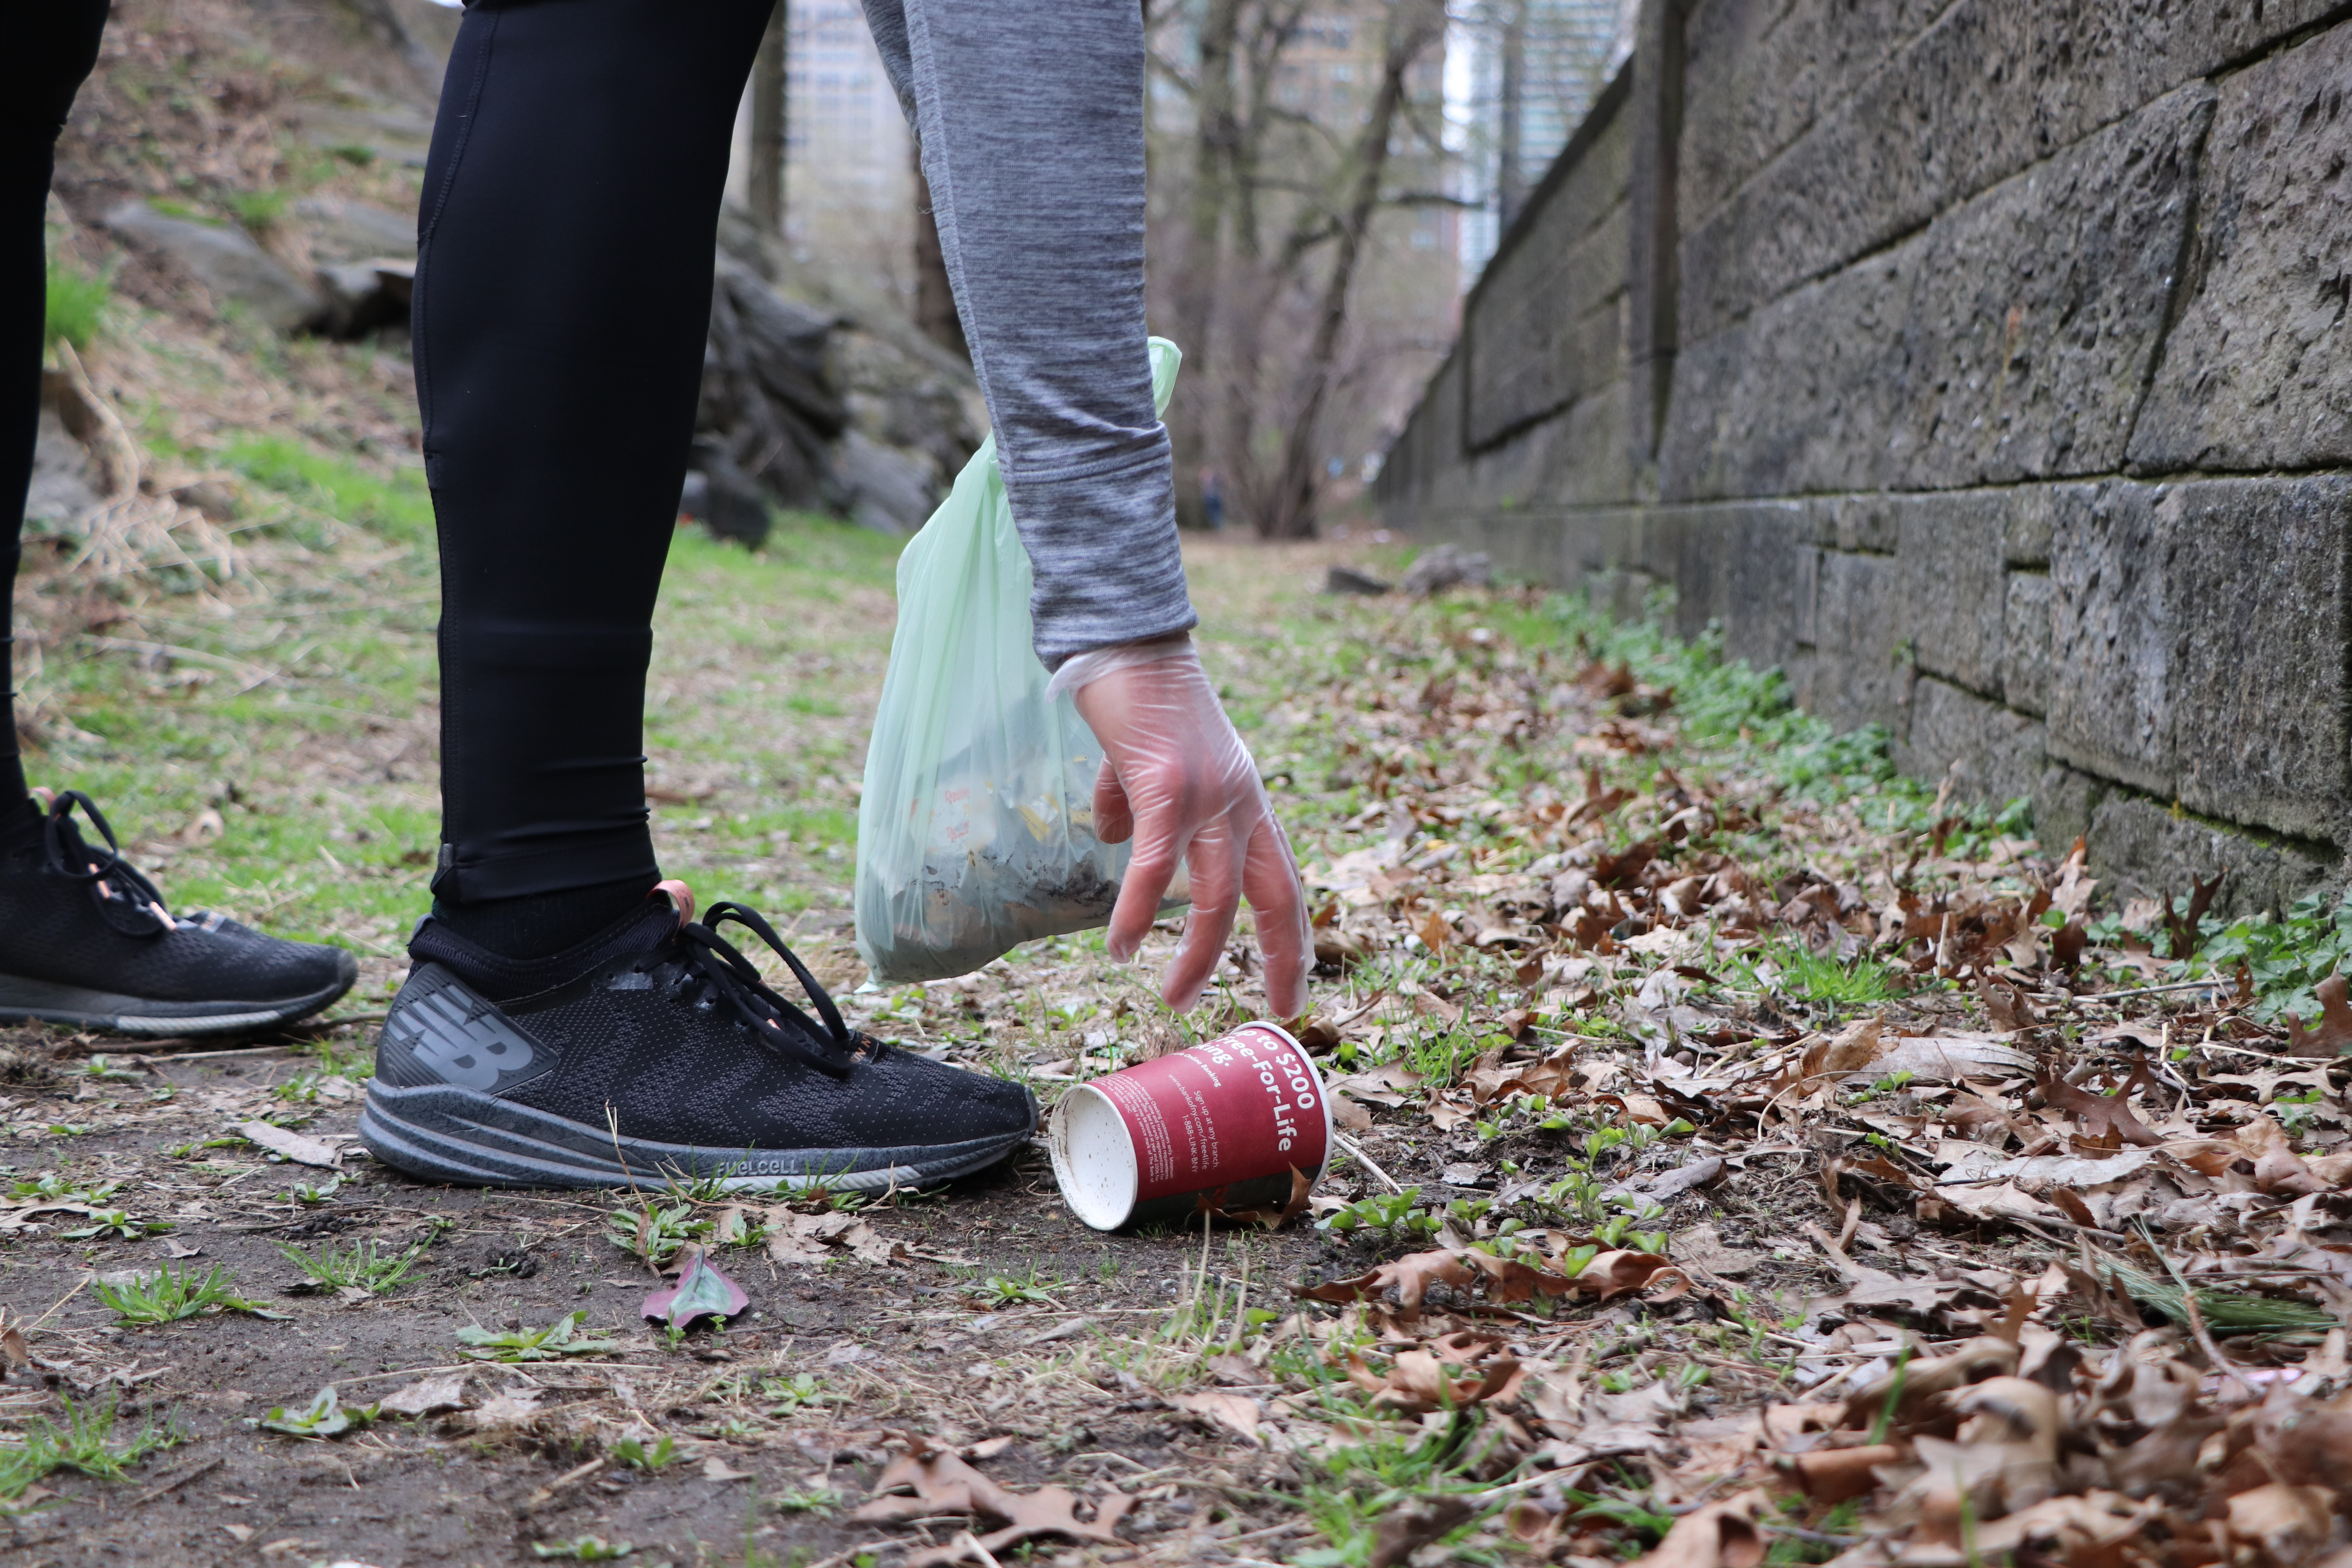 Runner picking up trash in Central Park